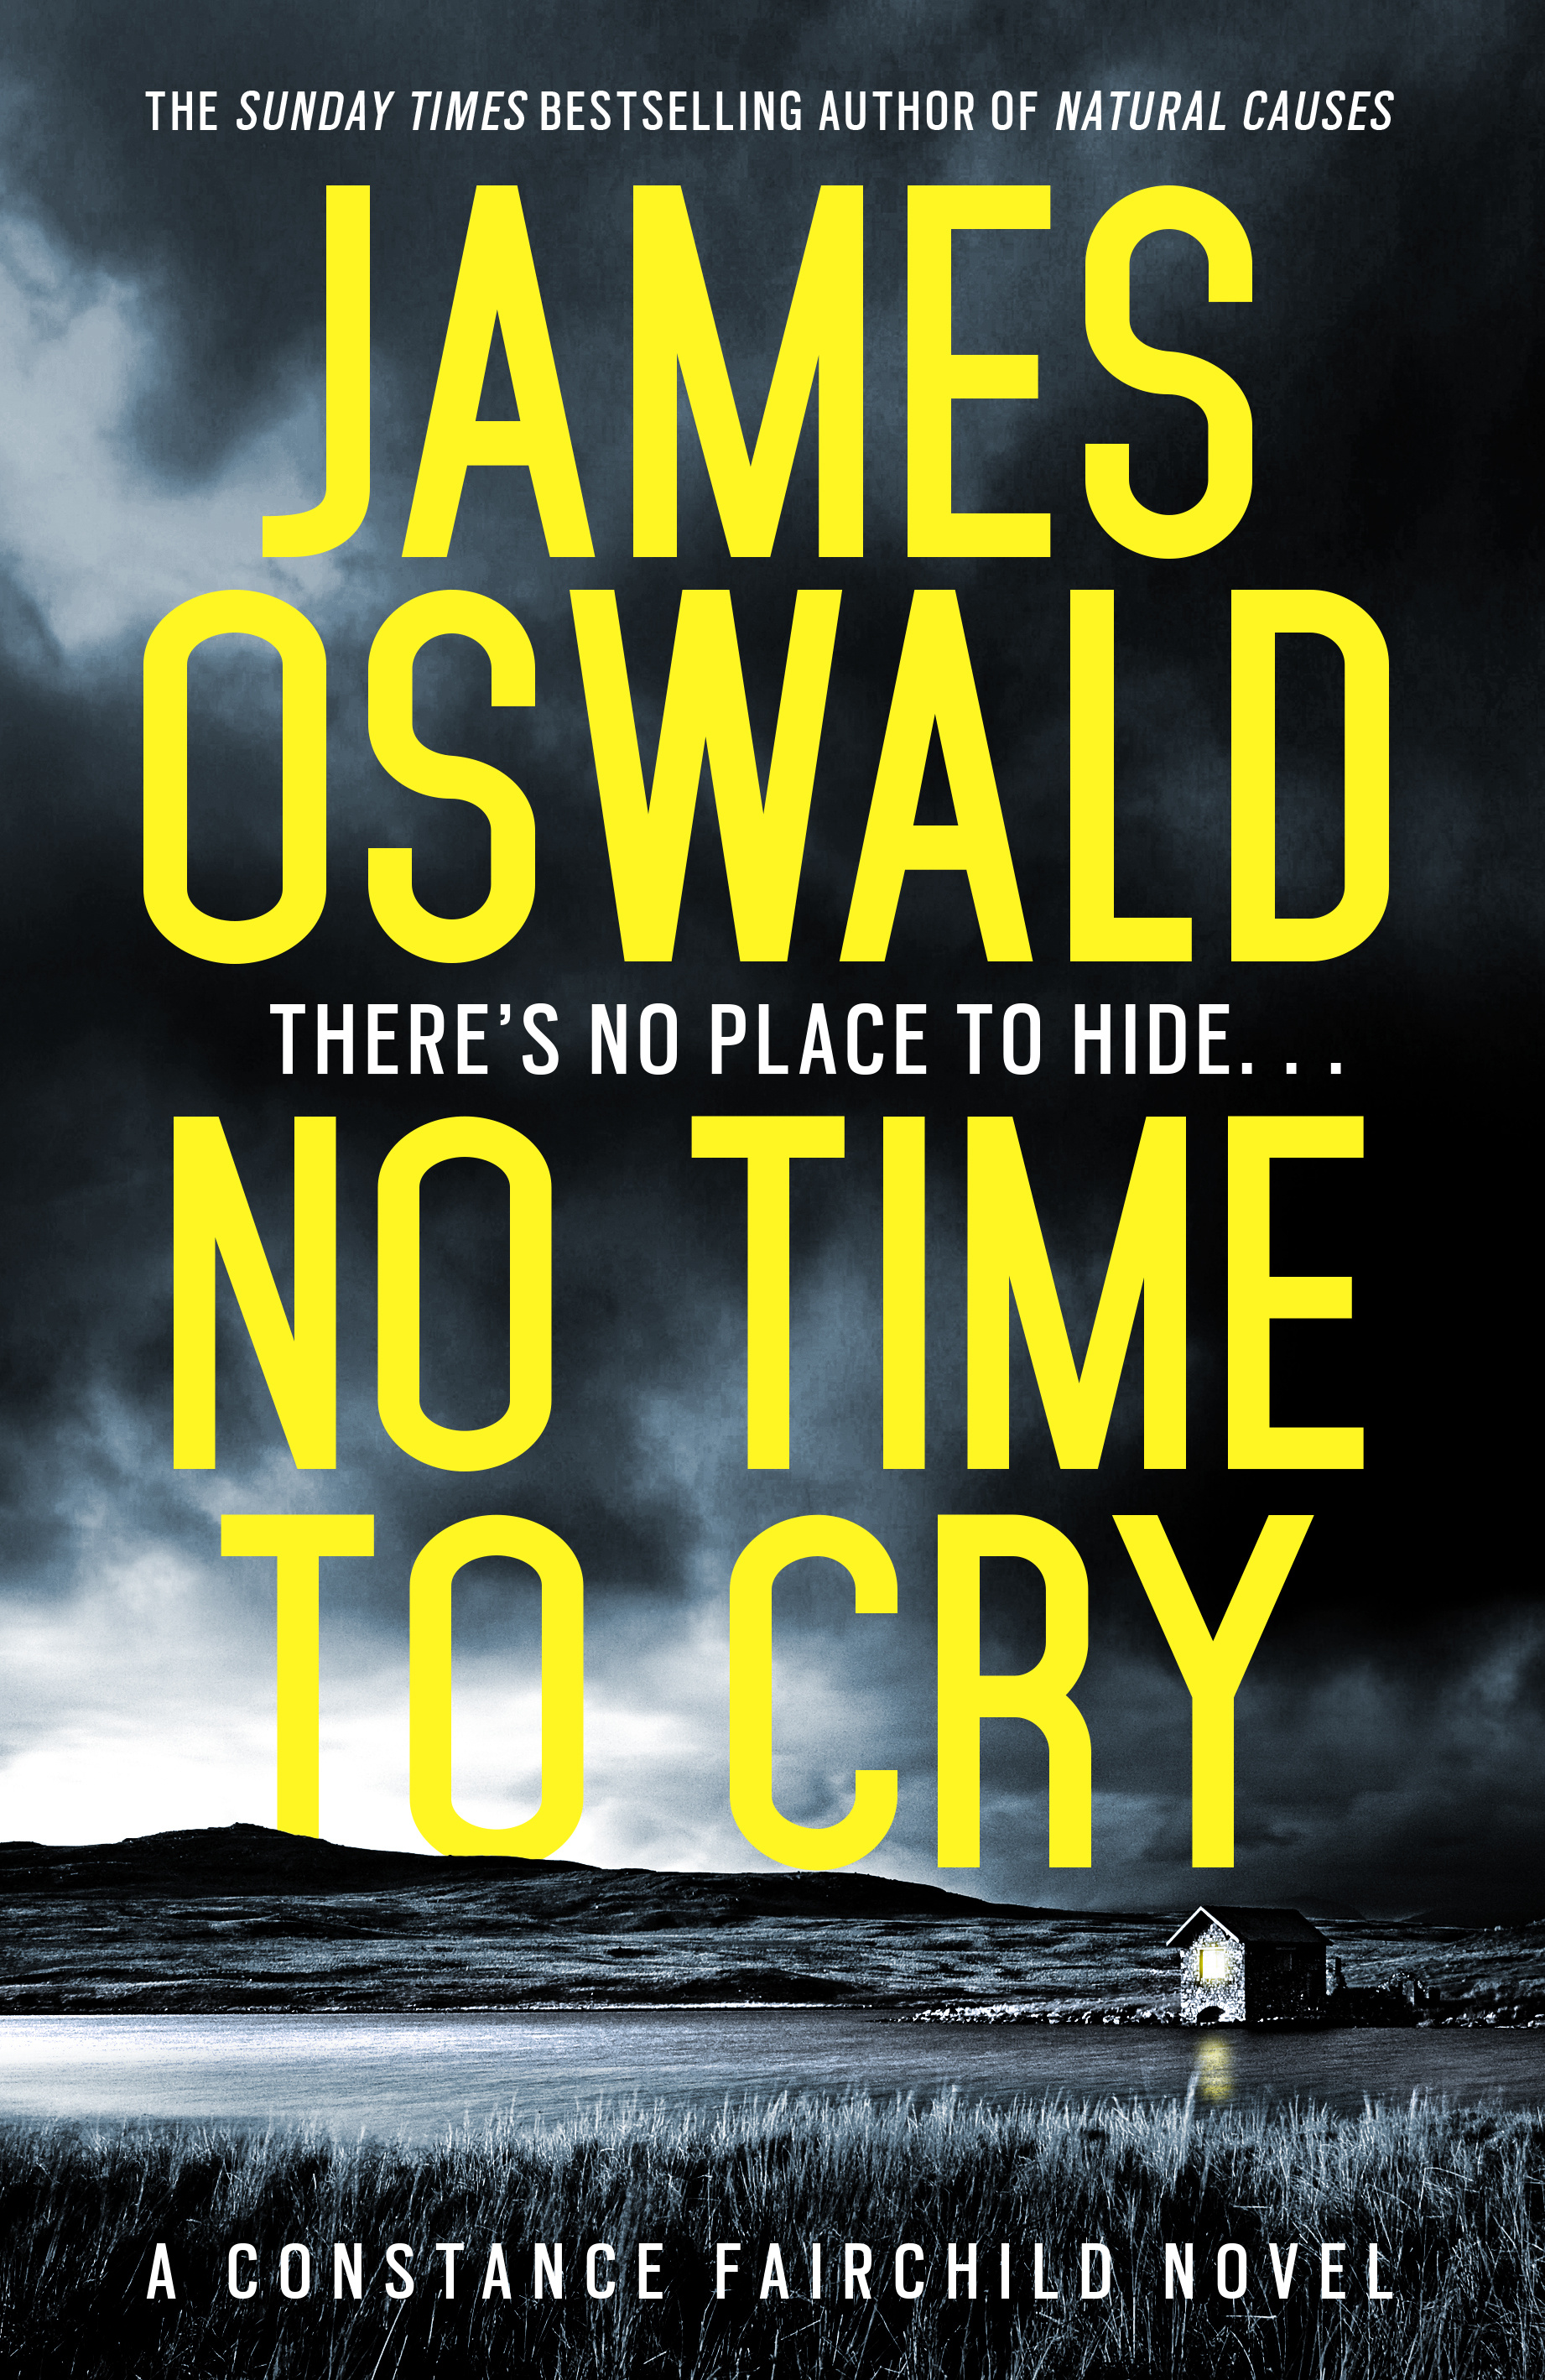 No Time to Cry (New Series James Oswald)